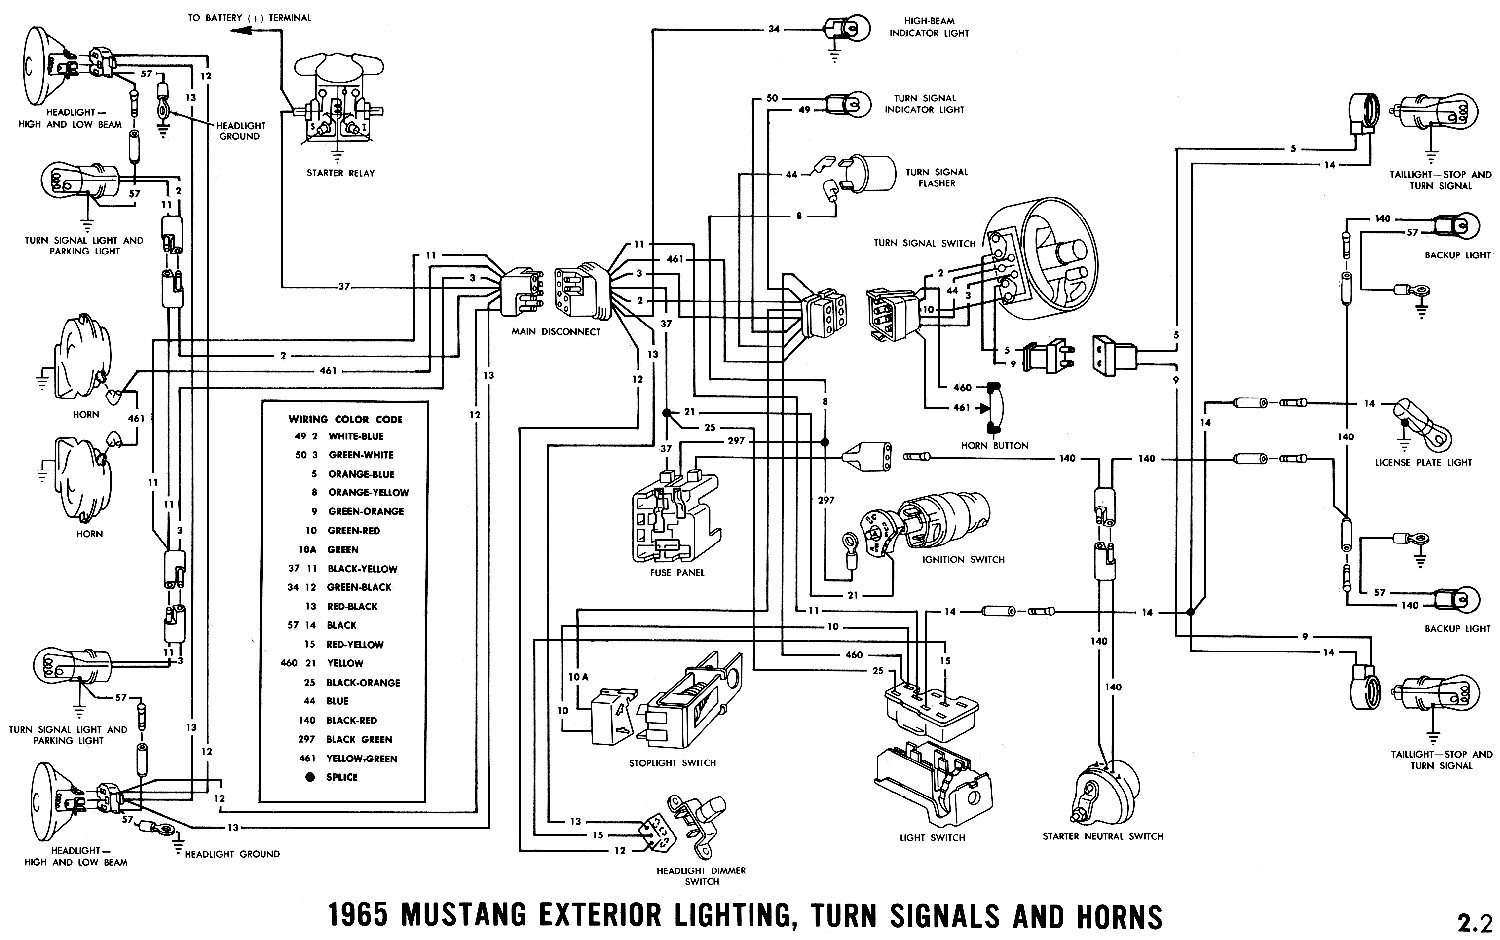 65 Jeep Cj5 Ignition Switch Wiring Library 1976 Cj7 1969 Mustang Under Hood Detailed Schematics Diagram Rh Mrskindsclass Com